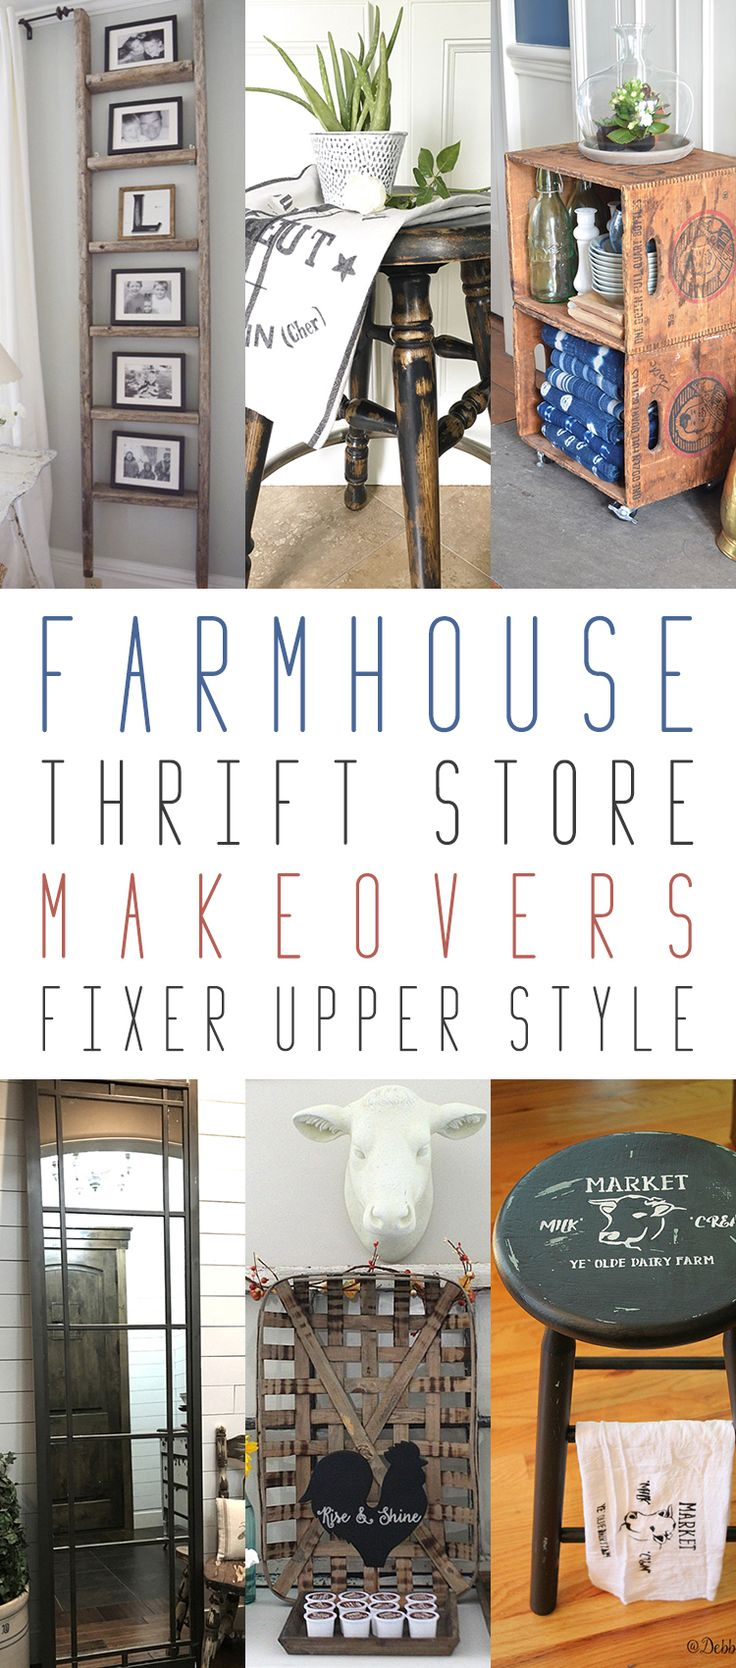 10 Farmhouse Thrift Store Makeovers Fixer Upper Style - The Cottage Market